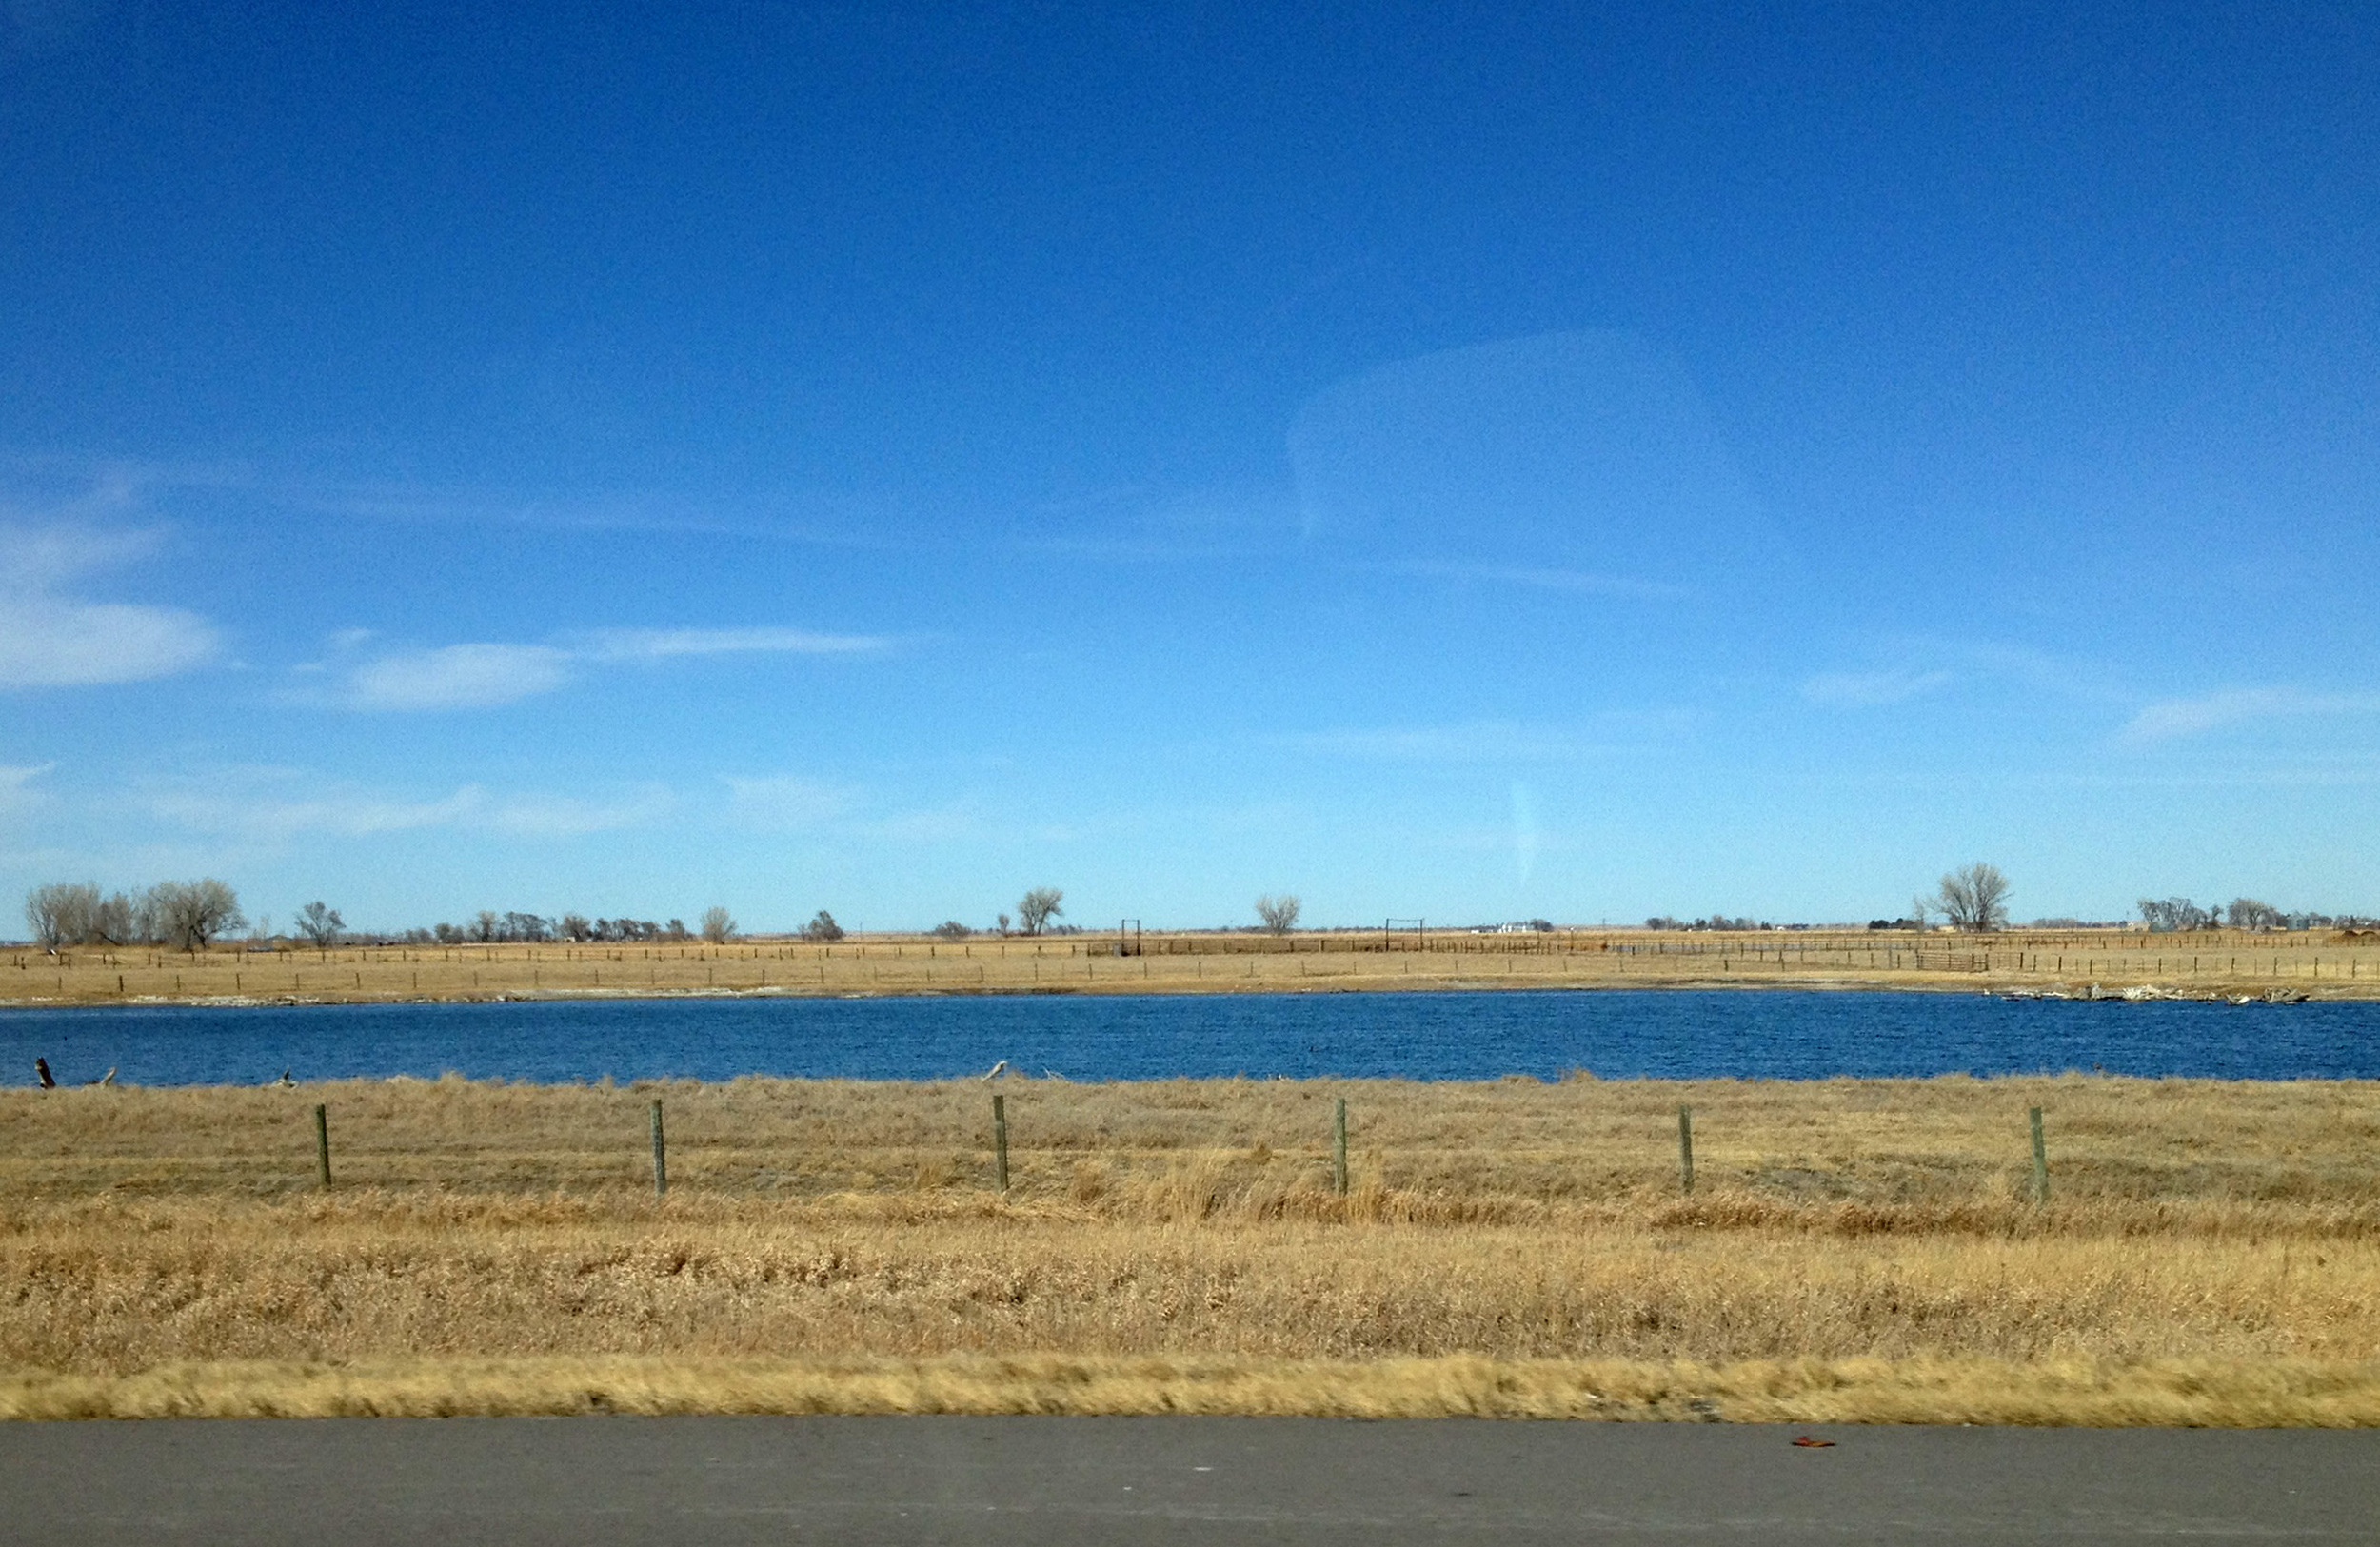 So much is going on in Nebraska! Look, there is some water! Amazing!